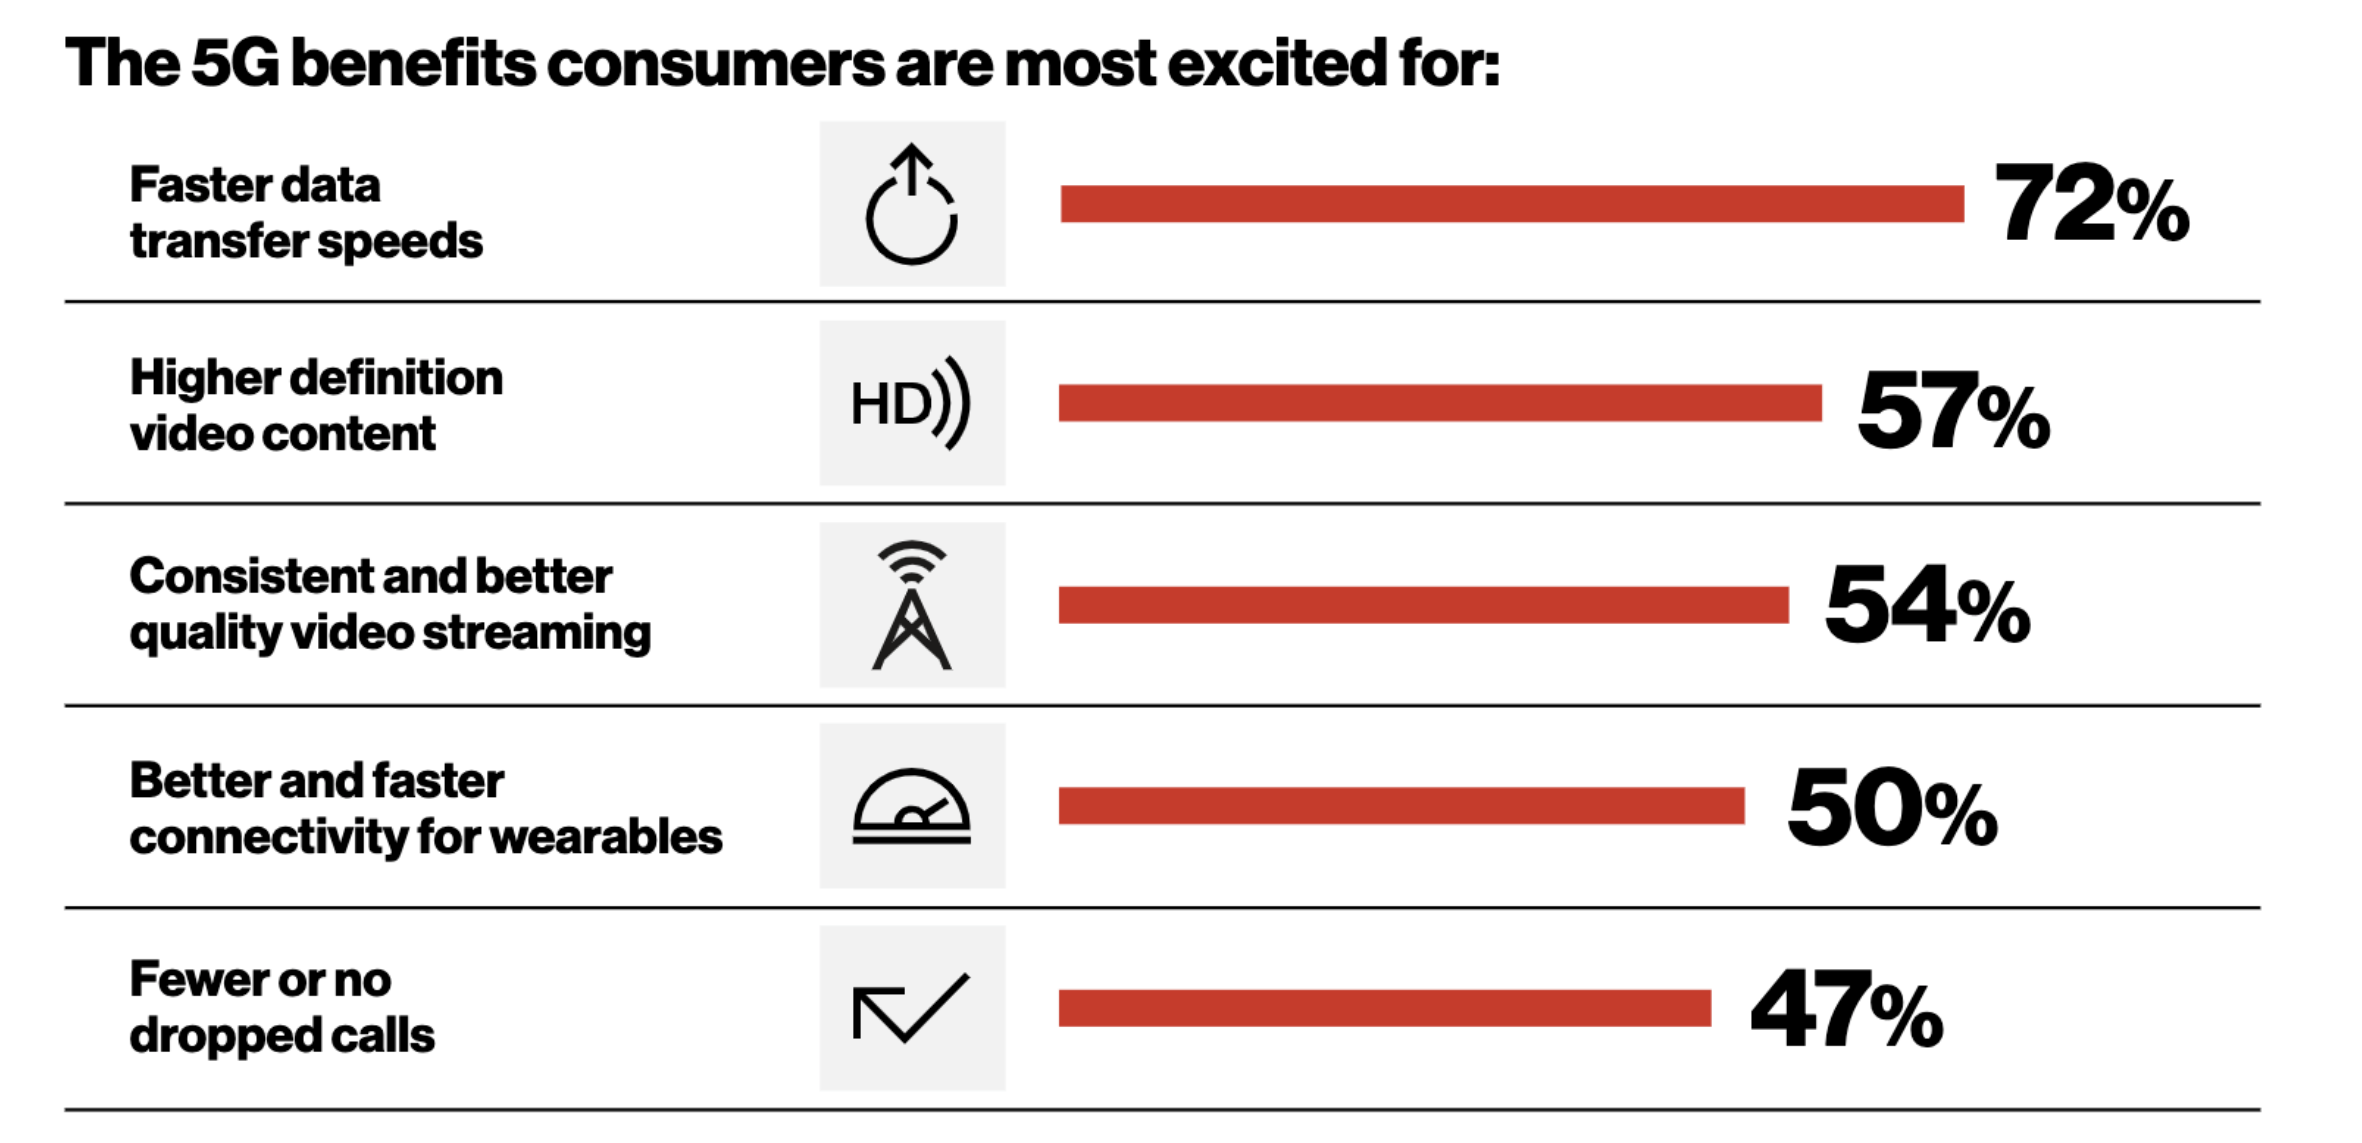 Verizon report on 5G benefits consumers were most excited for heading into 2020.